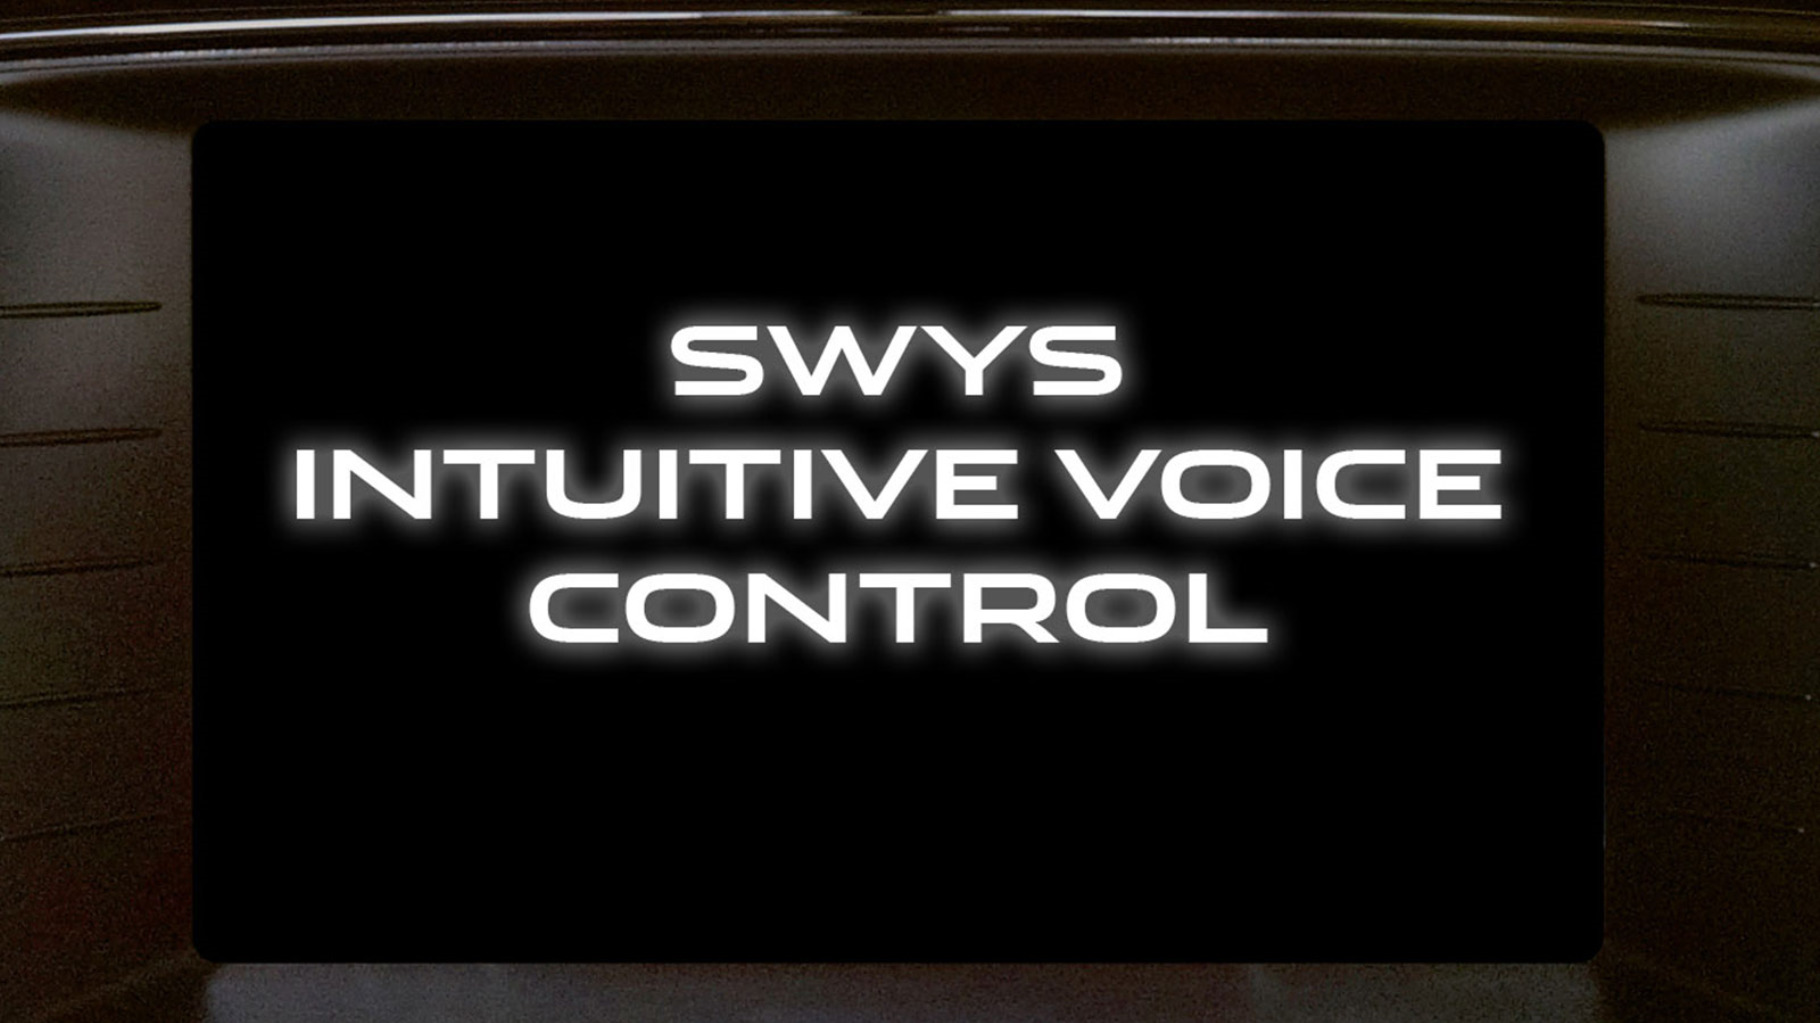 IMG_WRAPPER_gallery_SWYS_Intuitive_Voice_Control_Device-Desktop_1600x900.jpg